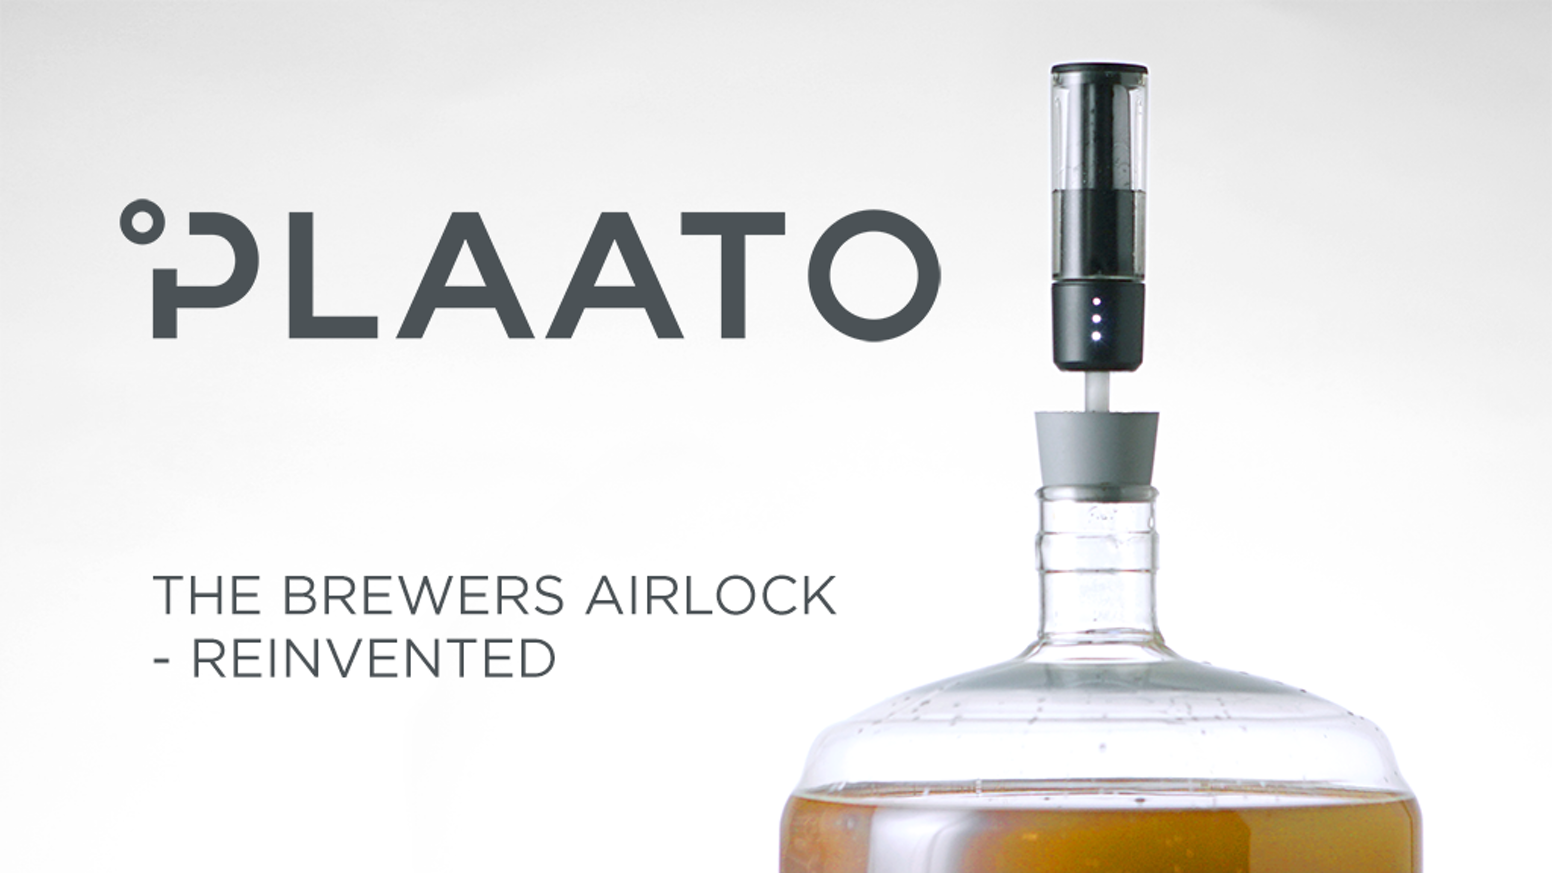 Plaato digital airlock - Homebrewing